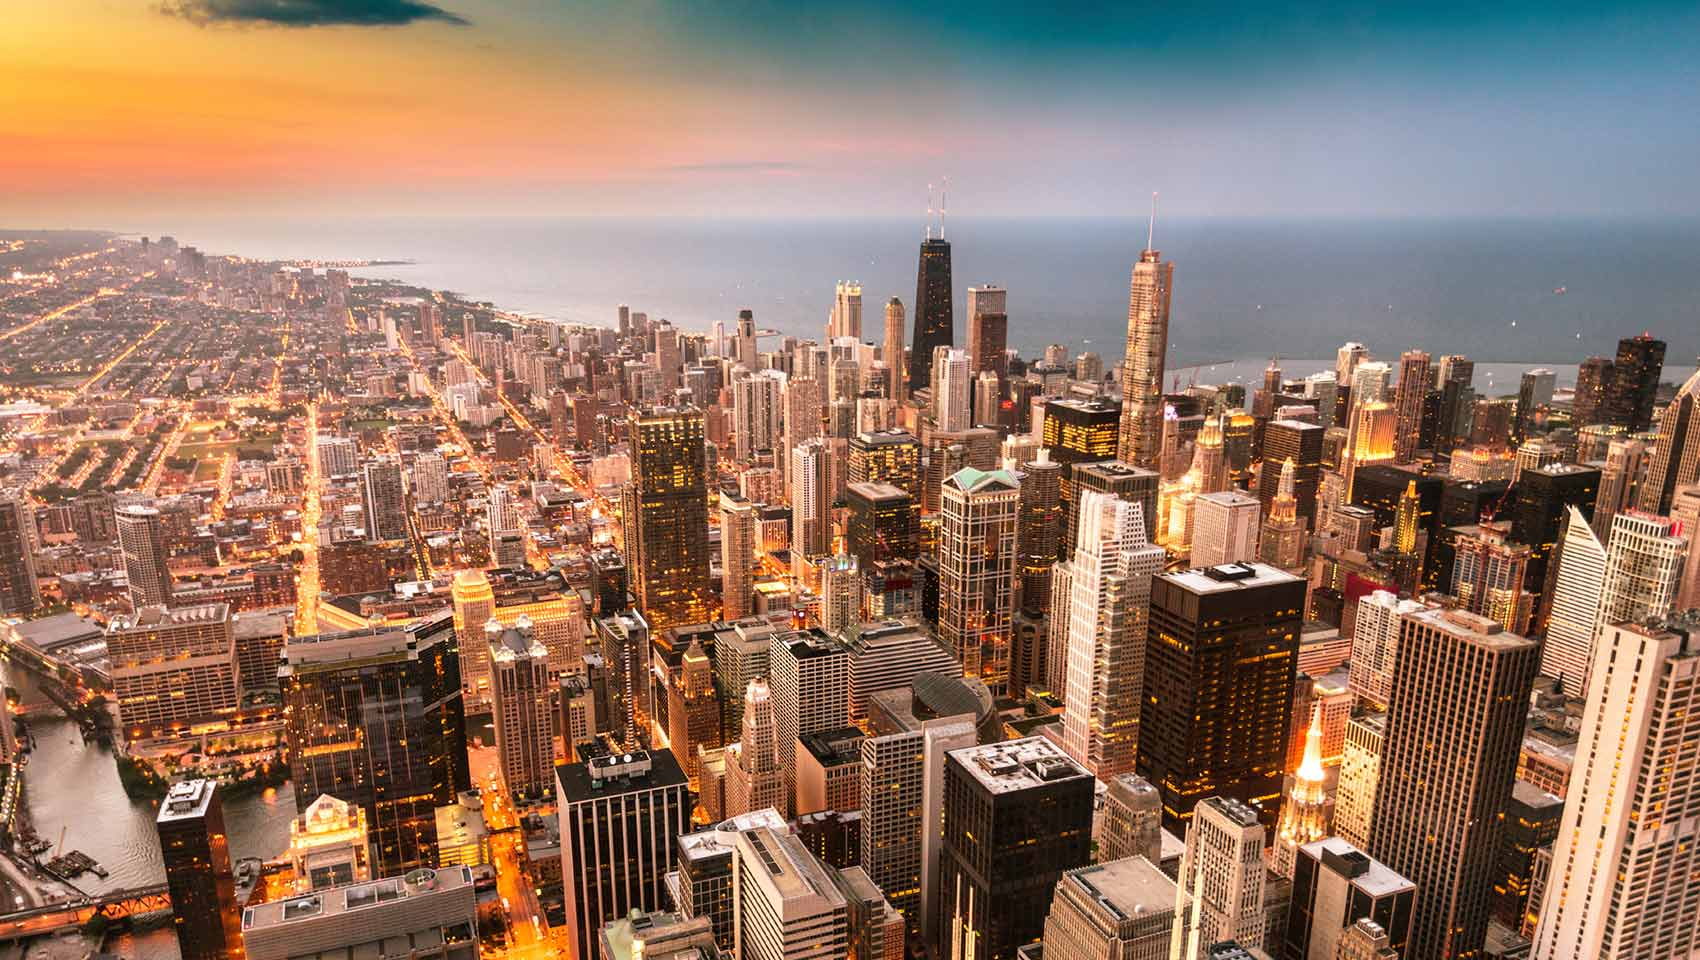 Things To Do In Chicago | Kimpton Hotel Monaco Chicago on chicago holiday events 2014, chicago hotel lobbies, san jose hotel map, detailed downtown chicago map, oklahoma city hotel map, chicago downtown apartments, chicago downtown restaurants, santa monica hotel map, chicago sightseeing map, chicago map downtown pdf, colorado springs airport hotel map, chicago hotels magnificent mile map, jacksonville hotel map, river walk hotel map, chicago attractions, chicago site seeing map, chicago loop map, downtown vancouver hotels map, sofitel chicago water tower map, augusta airport hotel map,